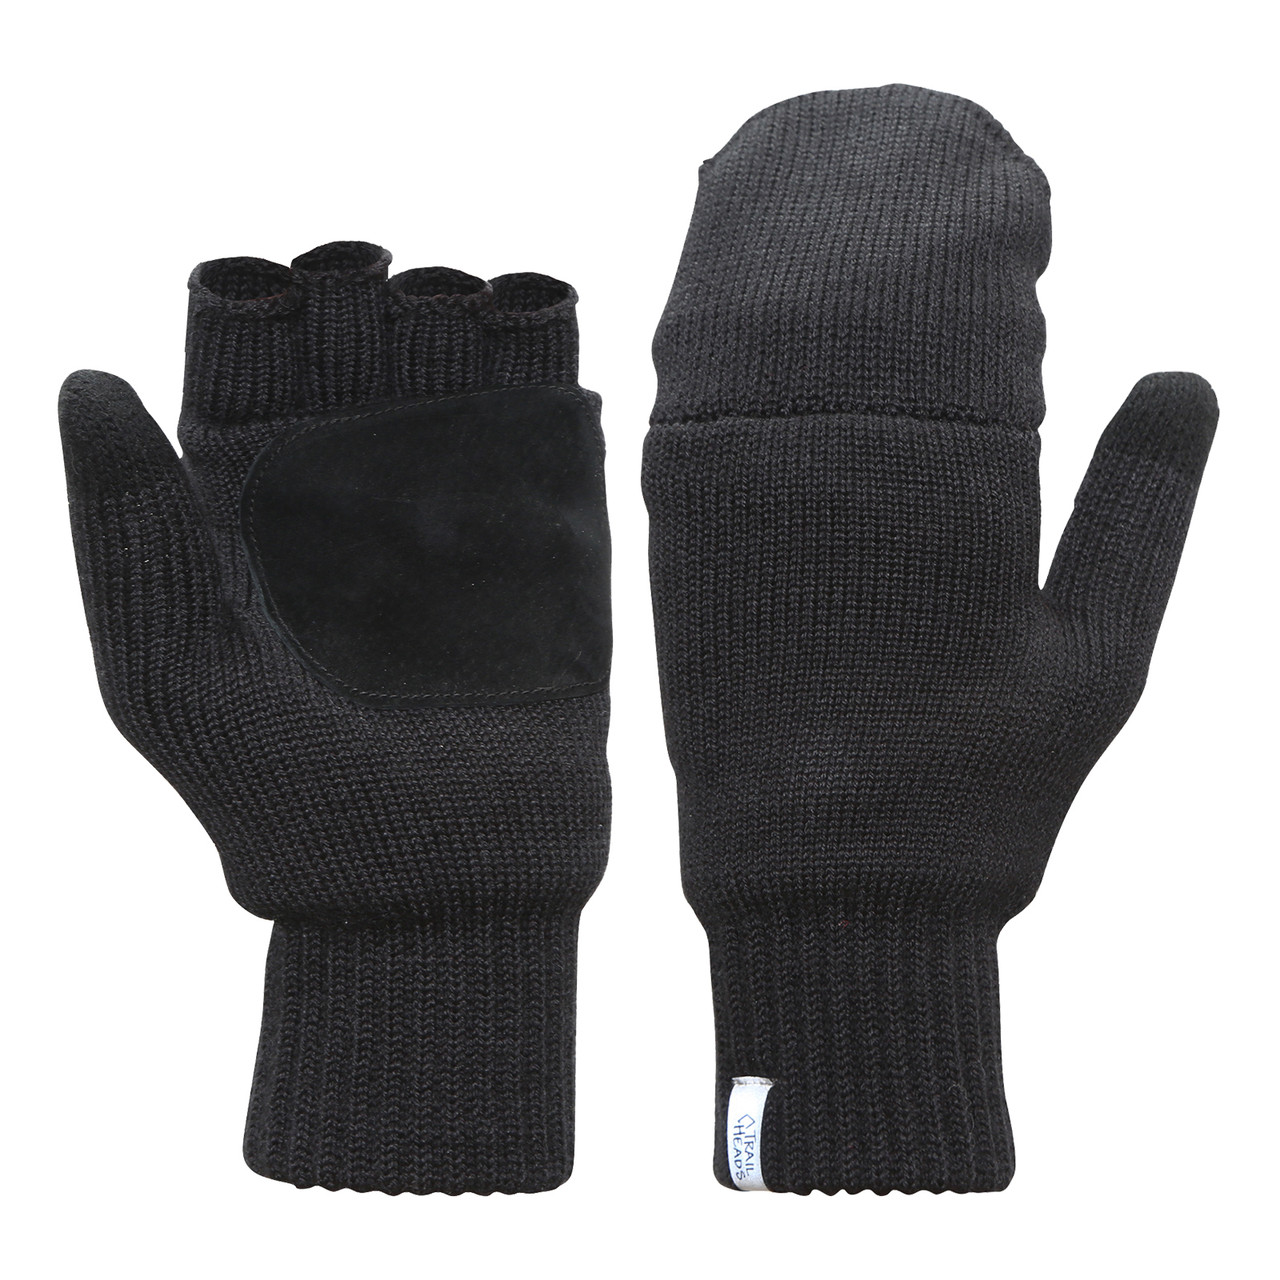 Winter Warm Mittens Convertible Fingerless Gloves Wool Knit Half-Finger Gloves for Ladies with Mittens Cover Cap Womens Gloves Fingerless Mittens